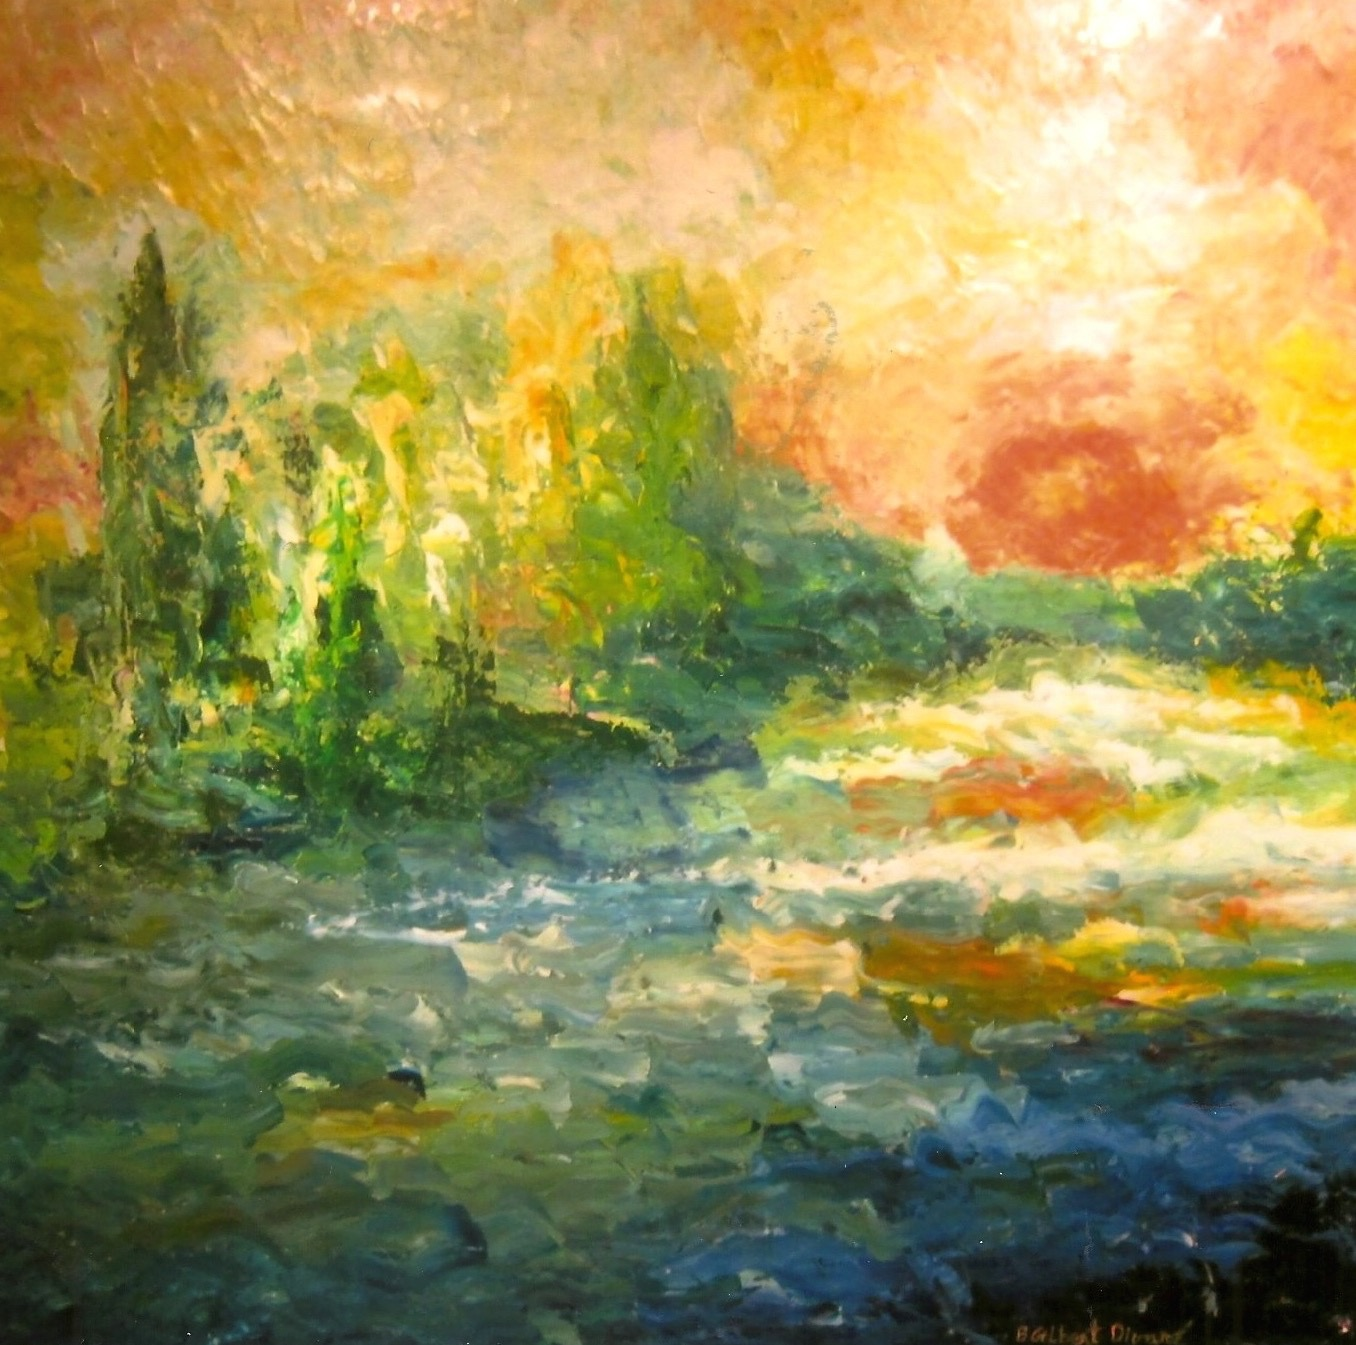 Upstream View from the South River Bridge Oil on Canvas 36x36(sold)